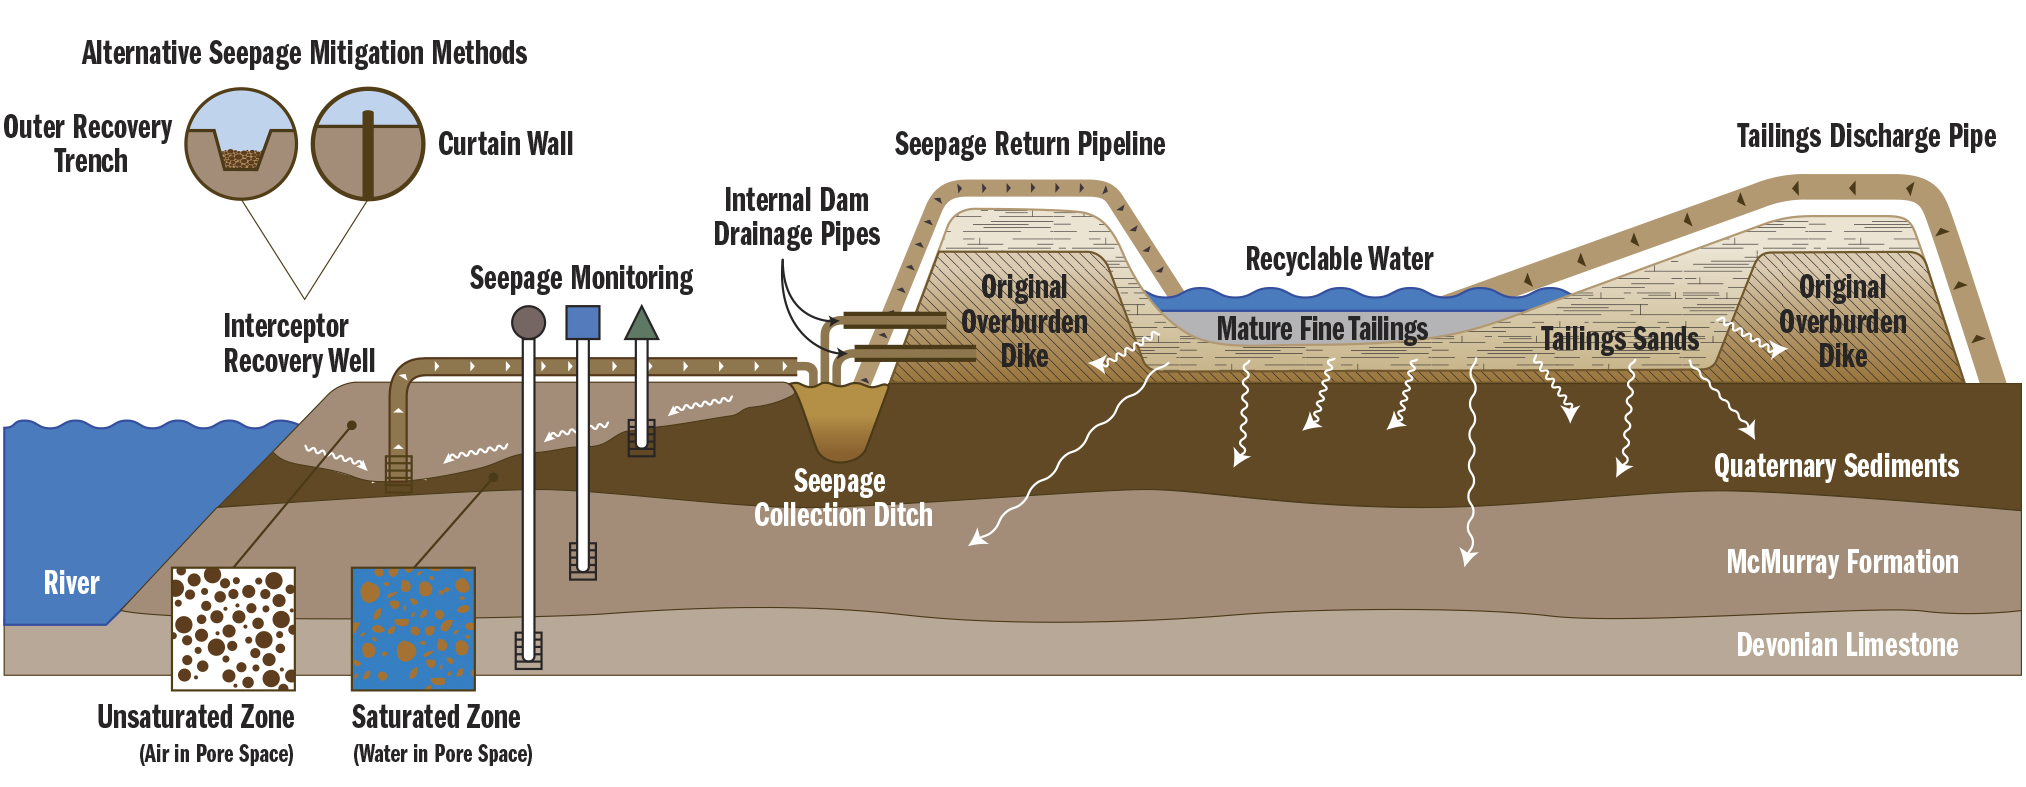 Tailings Seepage Recapturing and Monitoring Systems